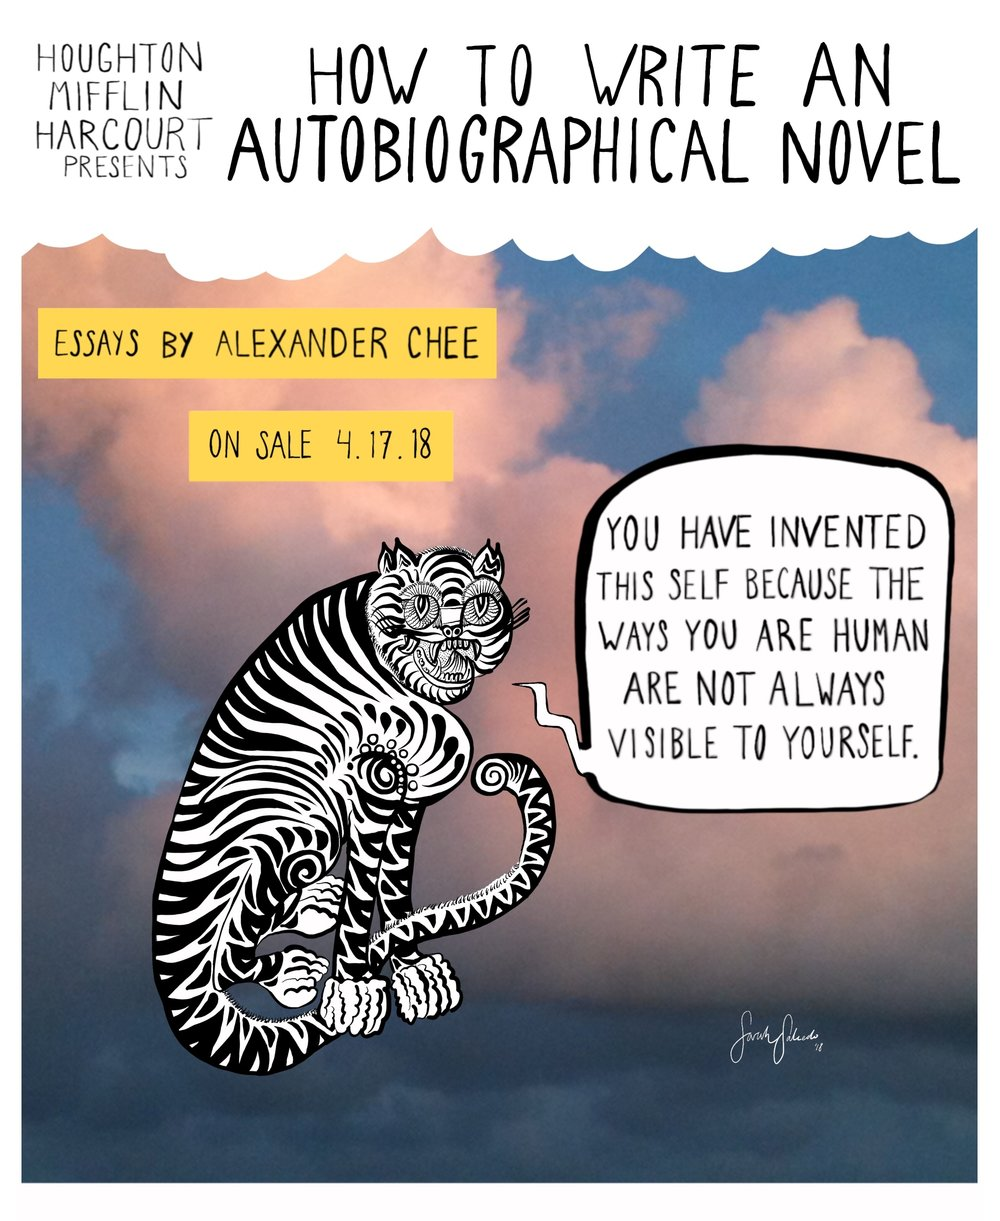 Art Commissioned for  Alexander Chee 's promotion of  How to Write an Autobiographical Novel